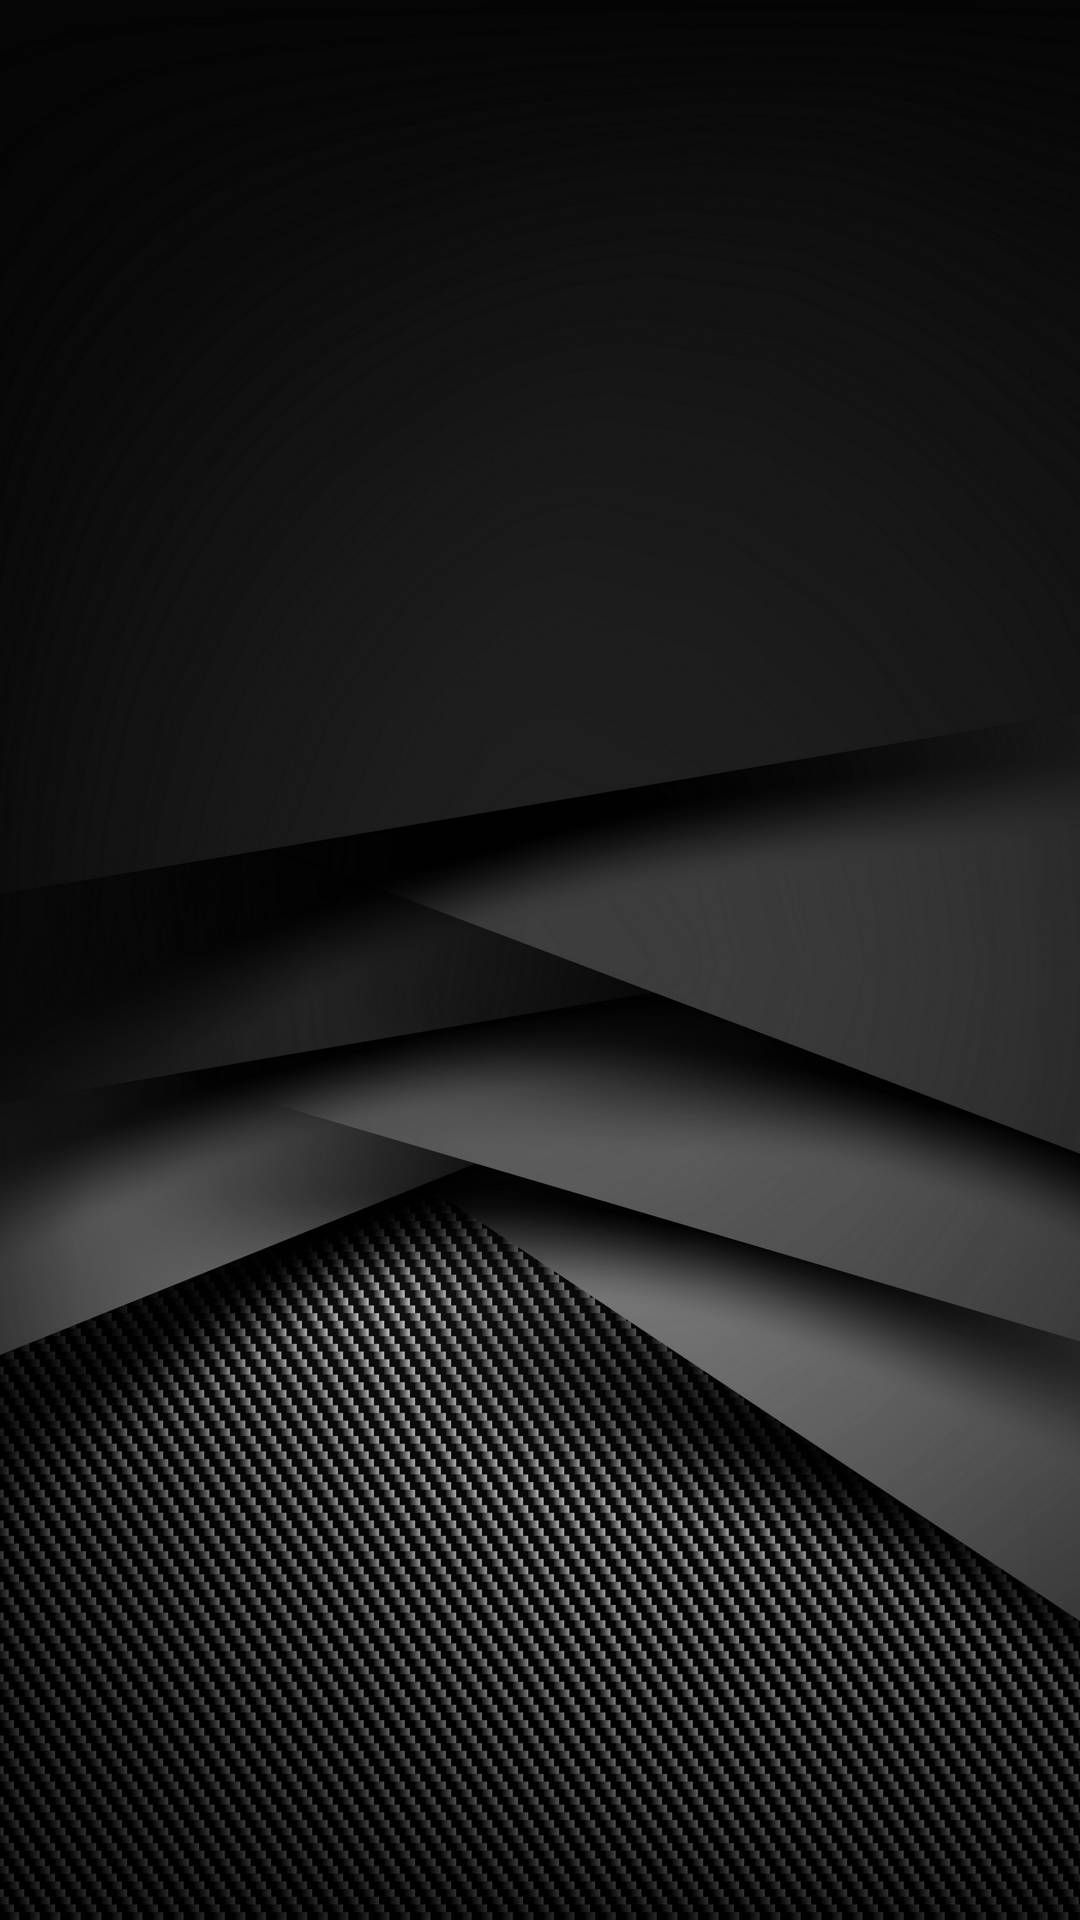 Black White And Grey Android Background In 2020 Black Wallpaper Android Wallpaper Red Black Background Wallpaper